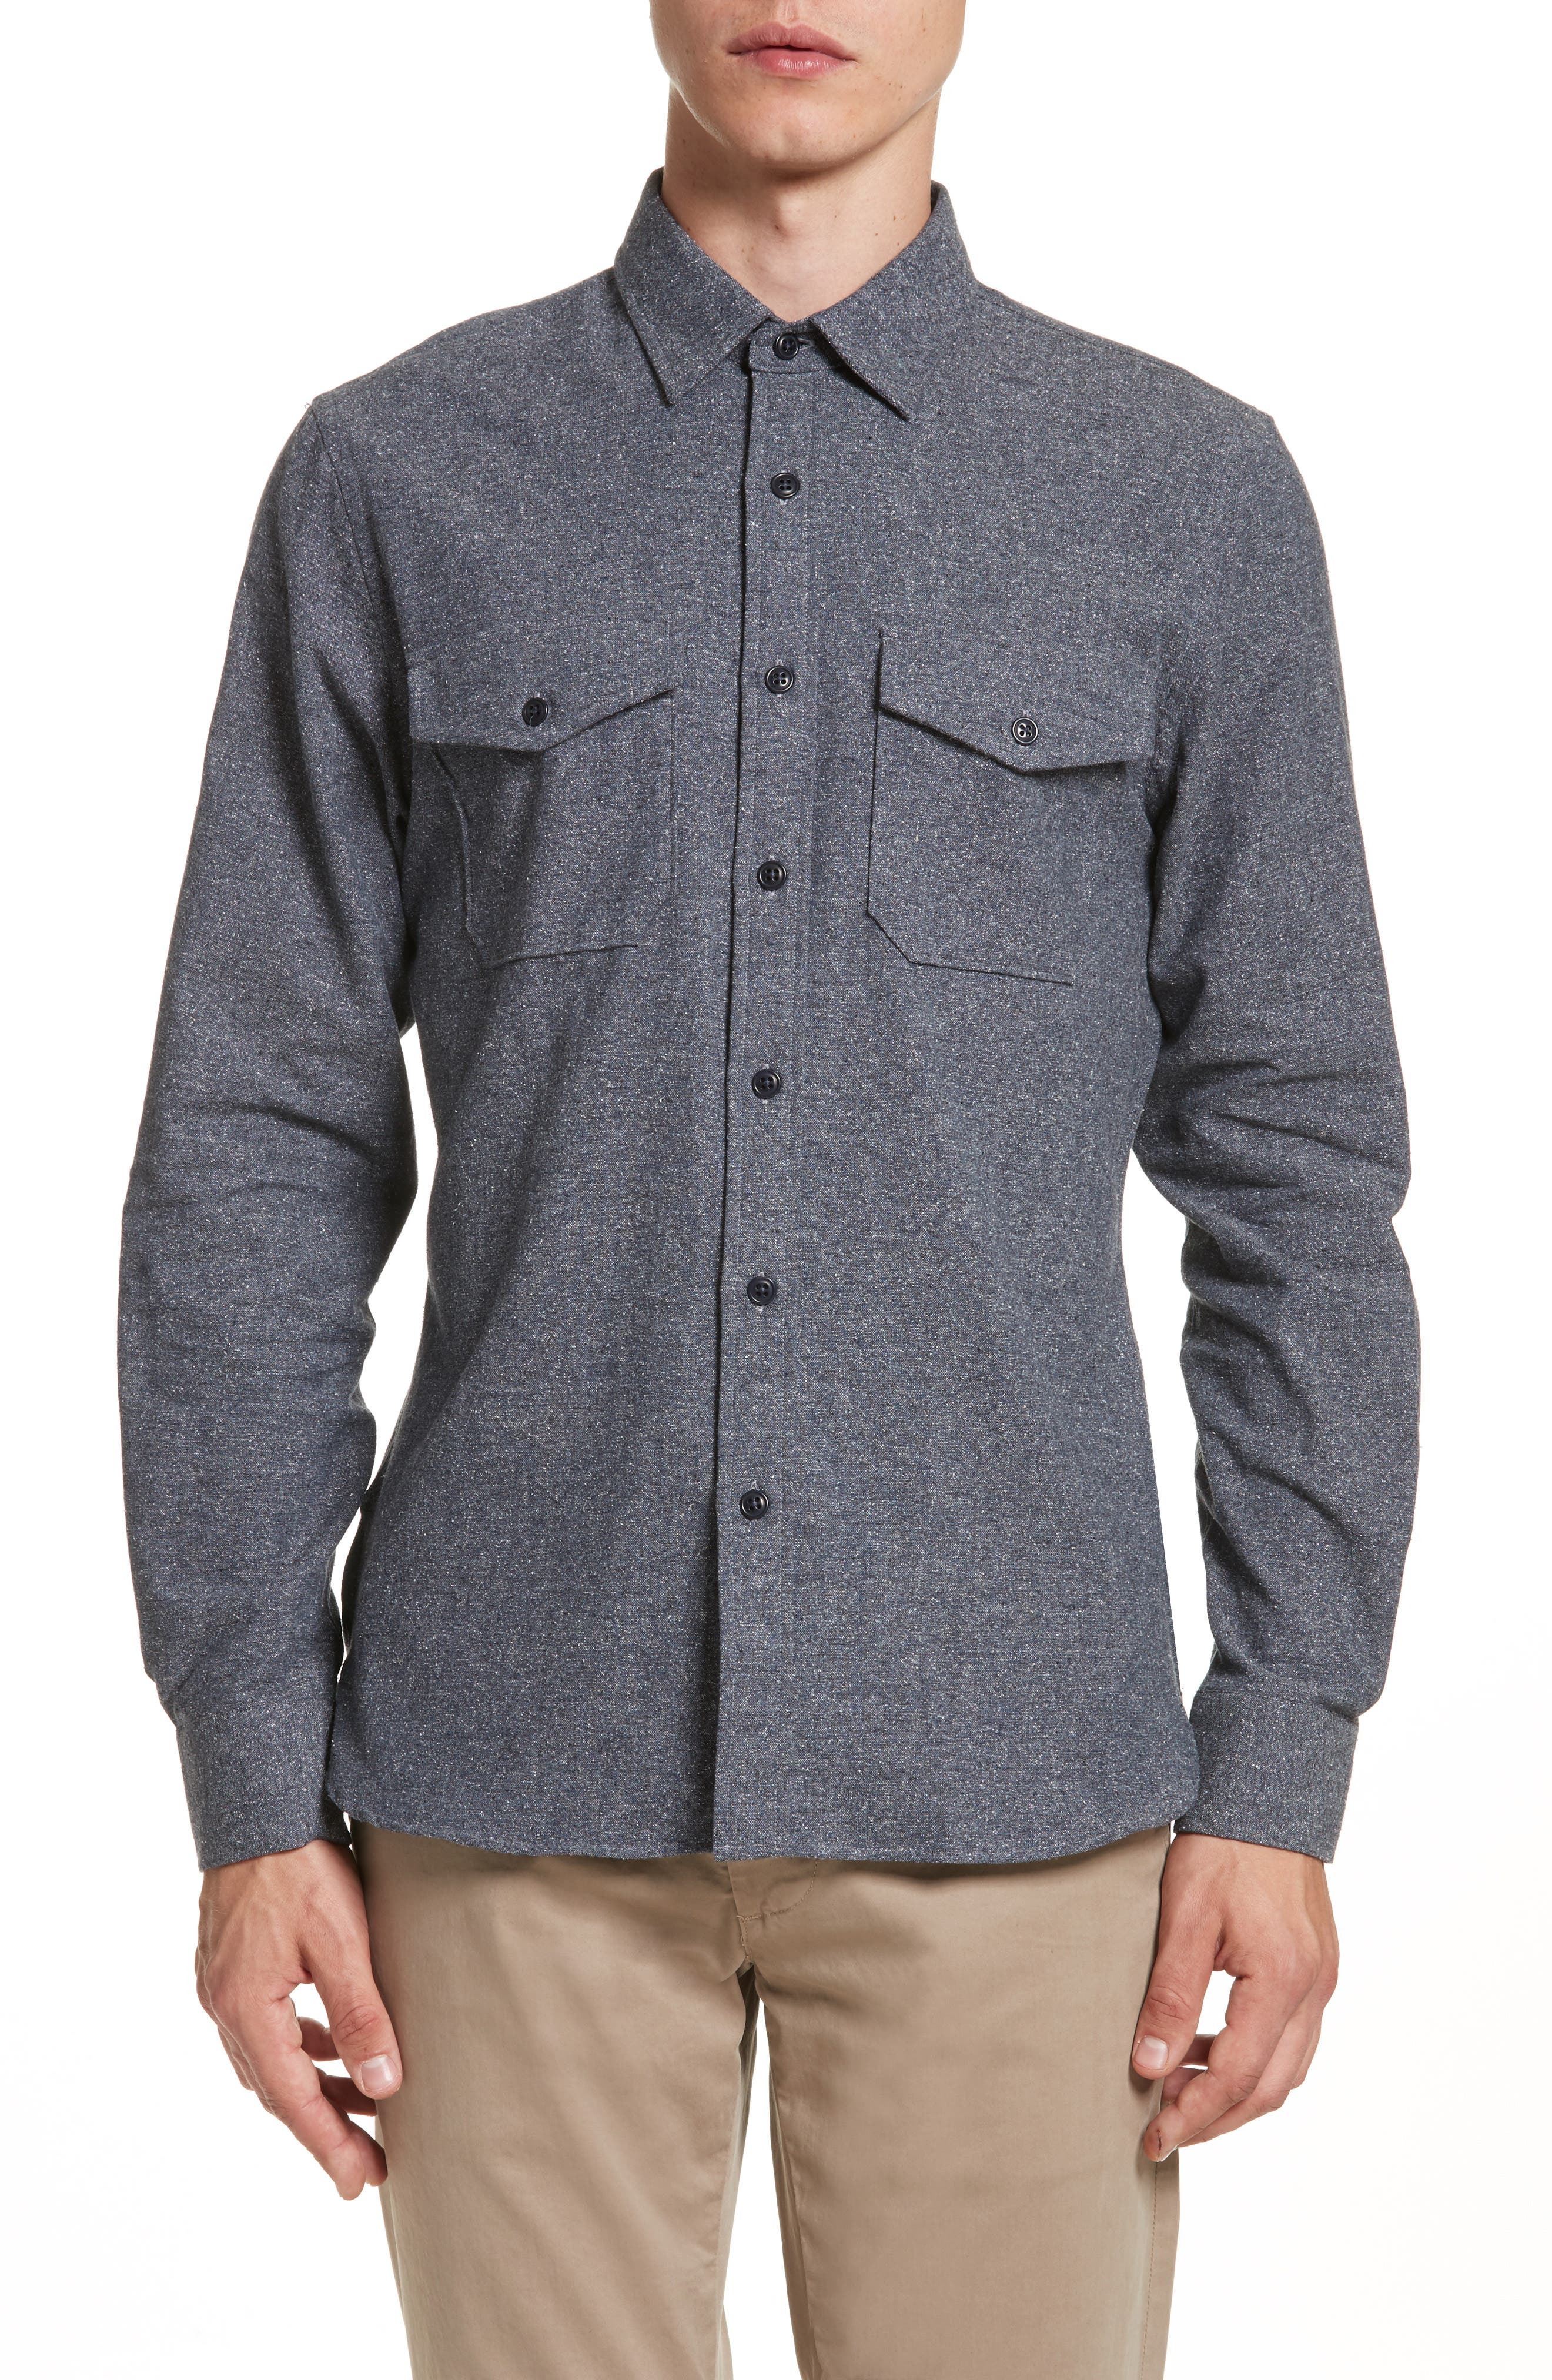 Todd Snyder Silk Blend Speckled Work Shirt